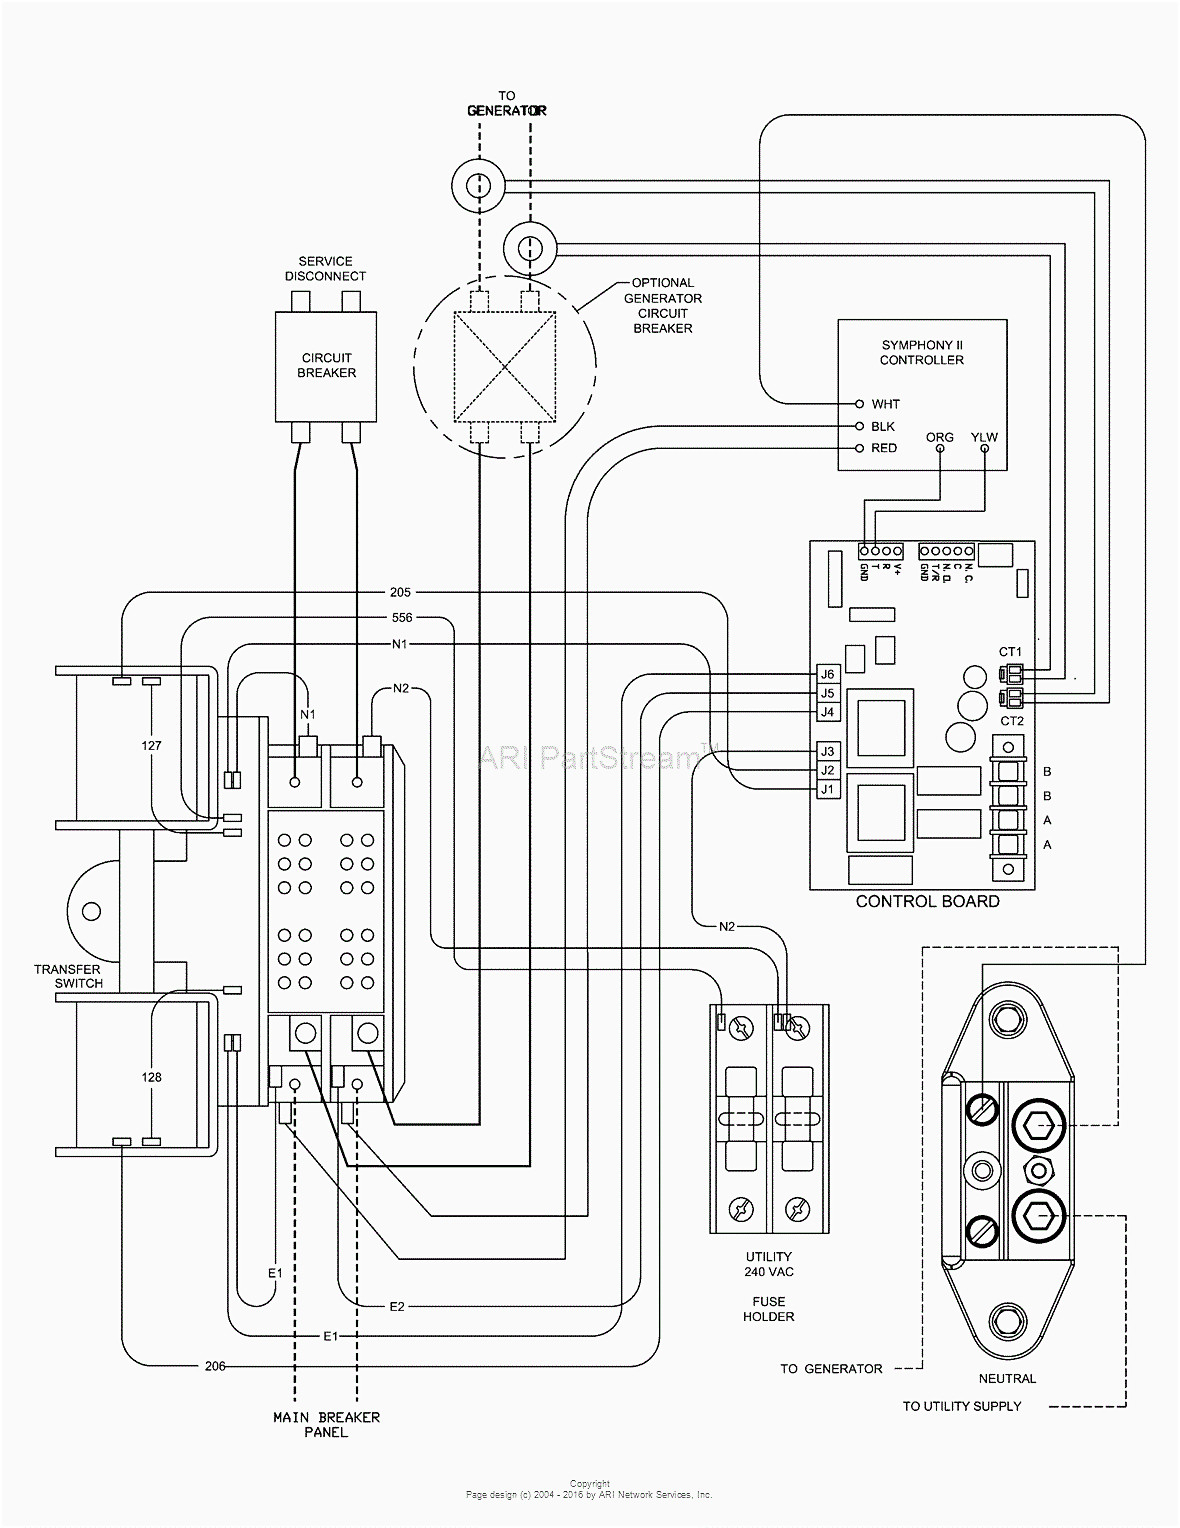 Collection Of Generac Rts Transfer Switch Wiring Diagram Download